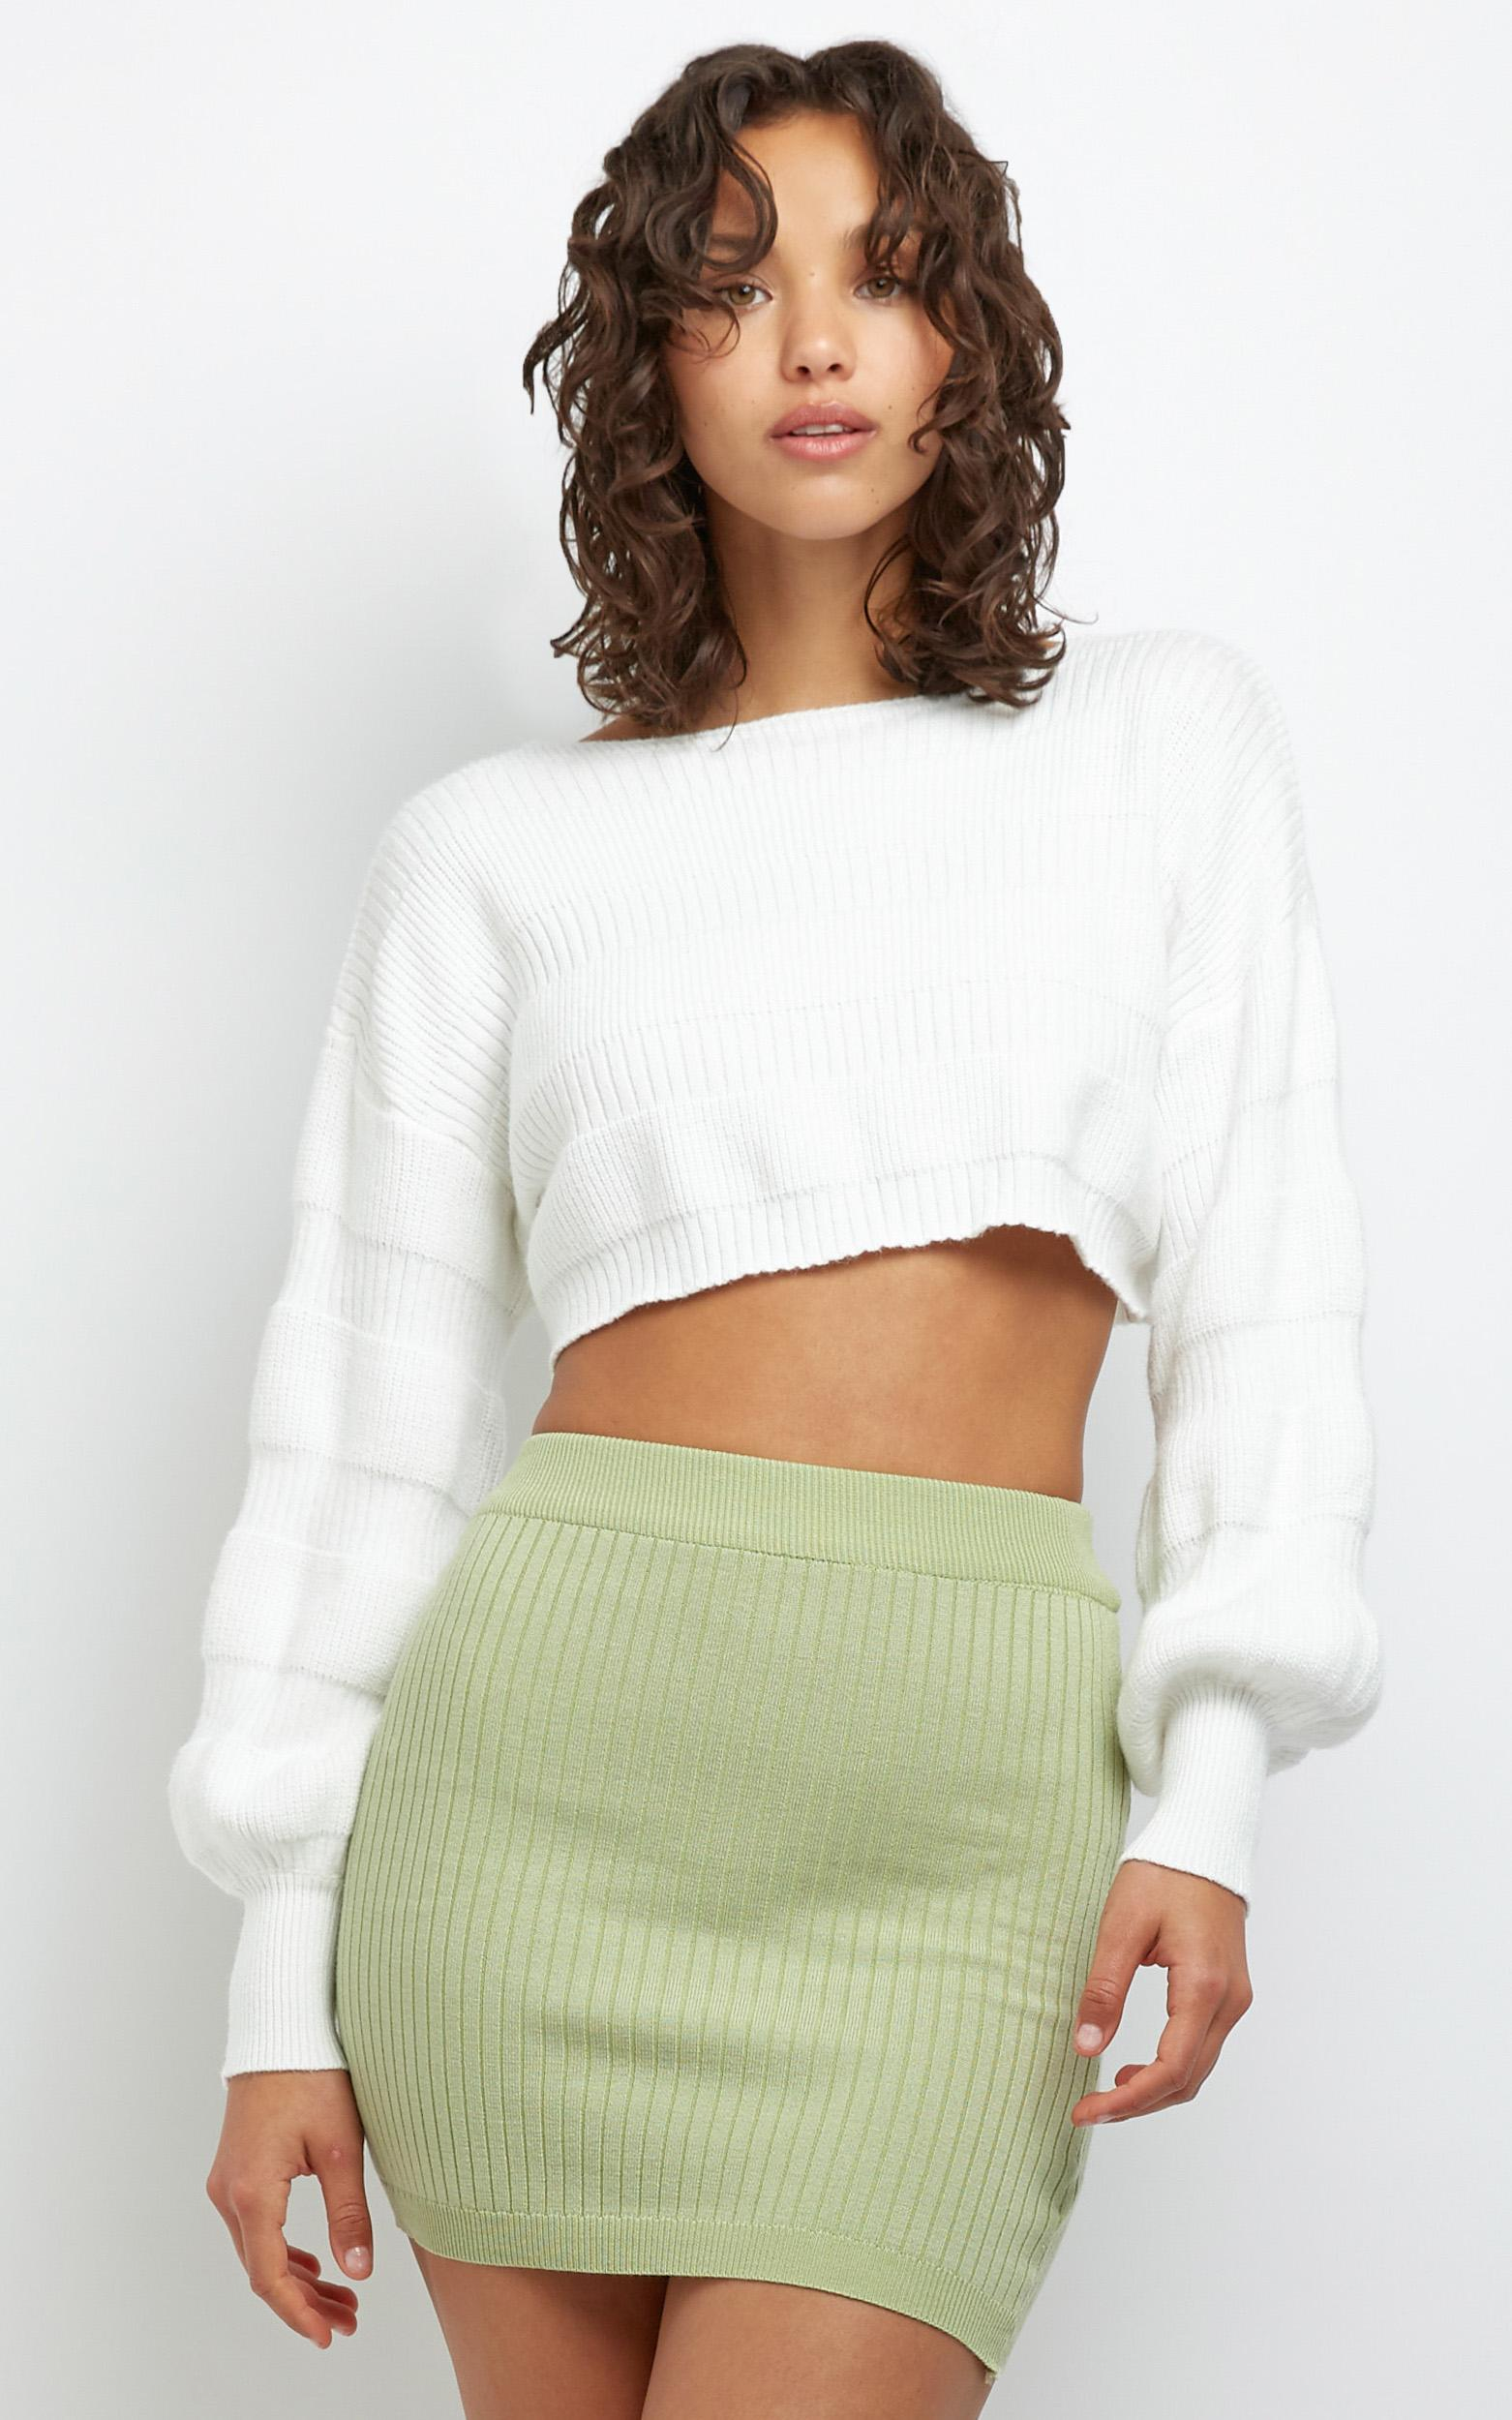 Mirabelle Knit Jumper in White - M/L, White, hi-res image number null